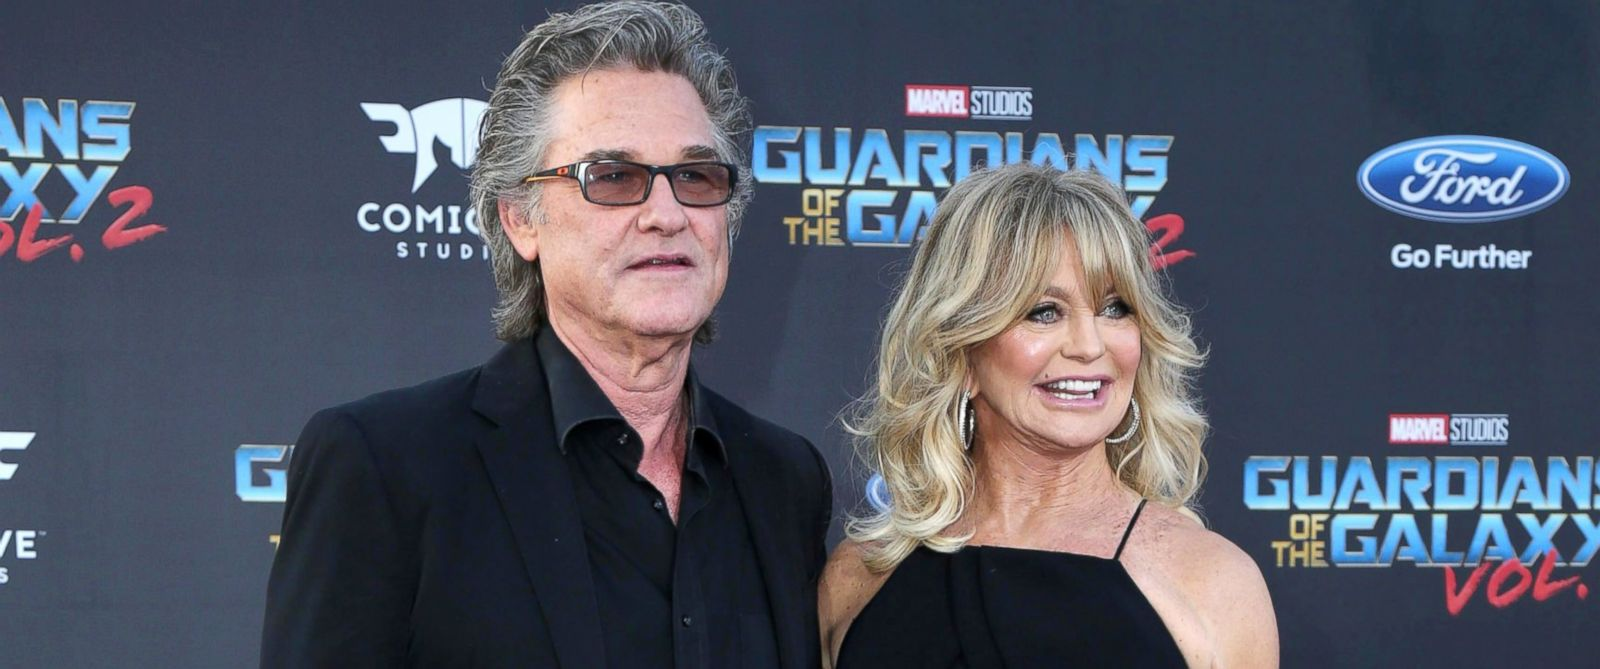 """PHOTO: Kurt Russell and Goldie Hawn attend the """"Guardians of the Galaxy Vol. 2"""" Los Angeles Premiere at the Dolby Theater, April 19, 2017, in Los Angeles."""